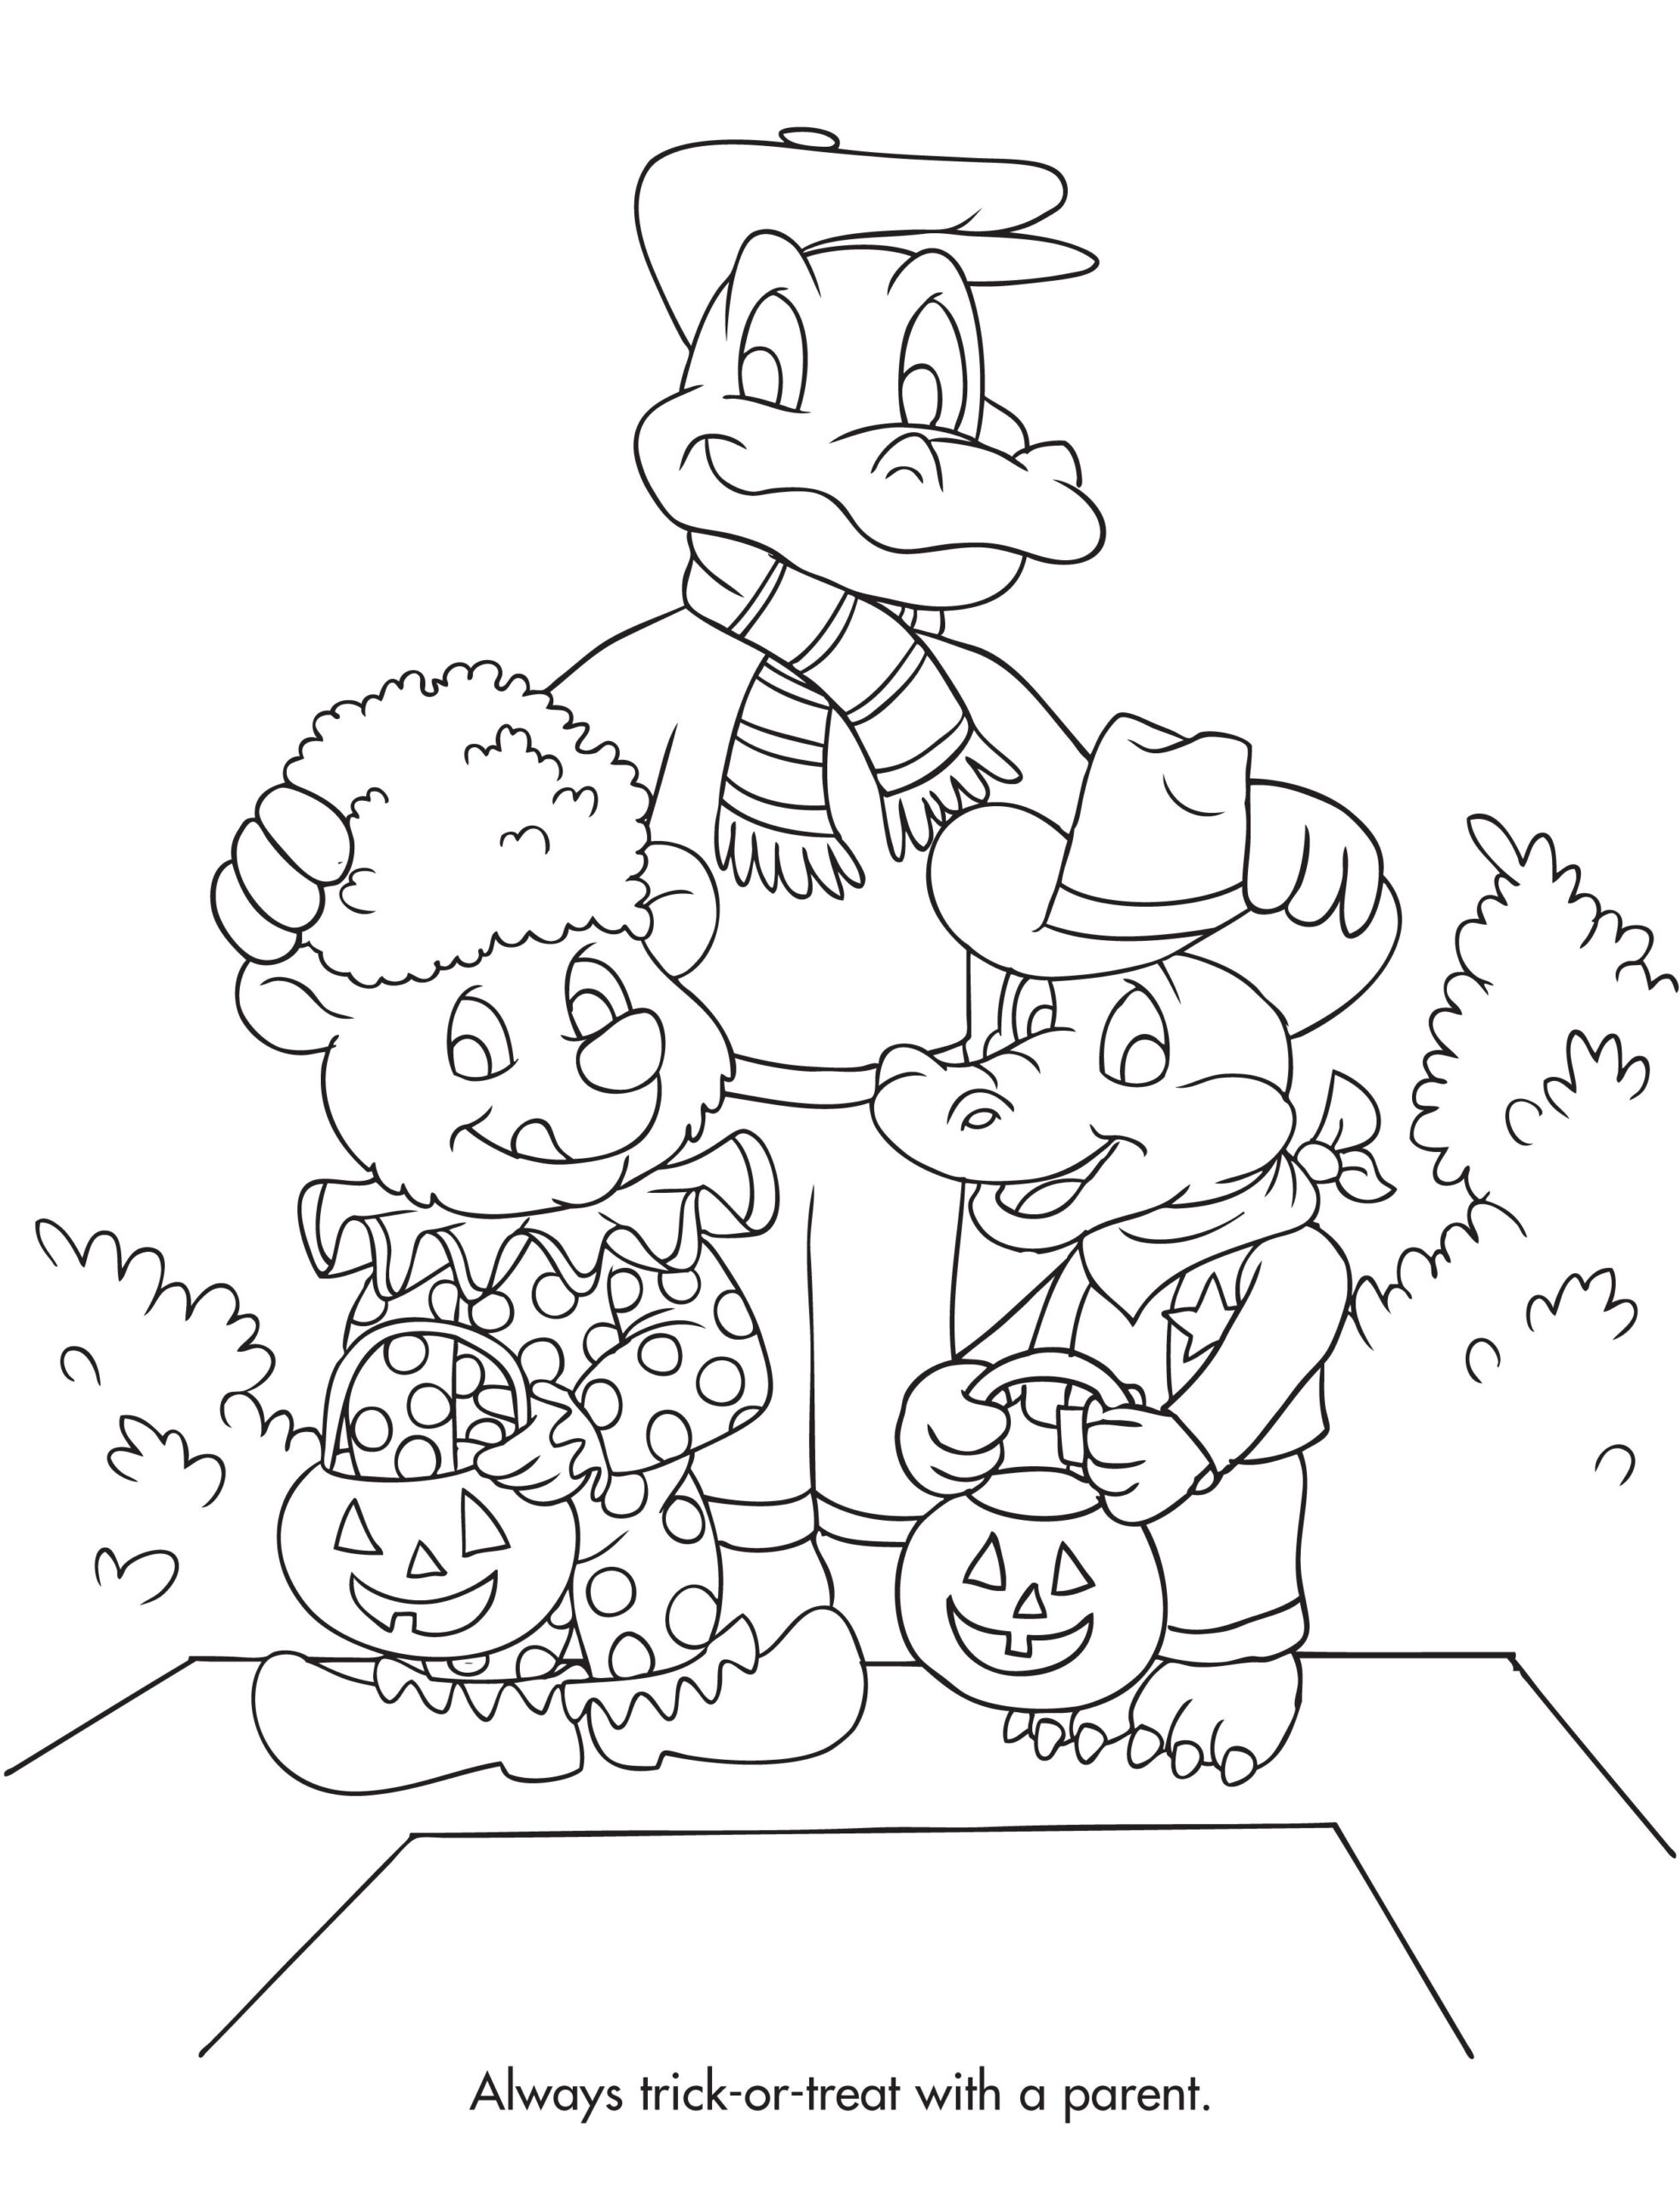 Halloween Safety Coloring Page   Halloween Safety, Monster